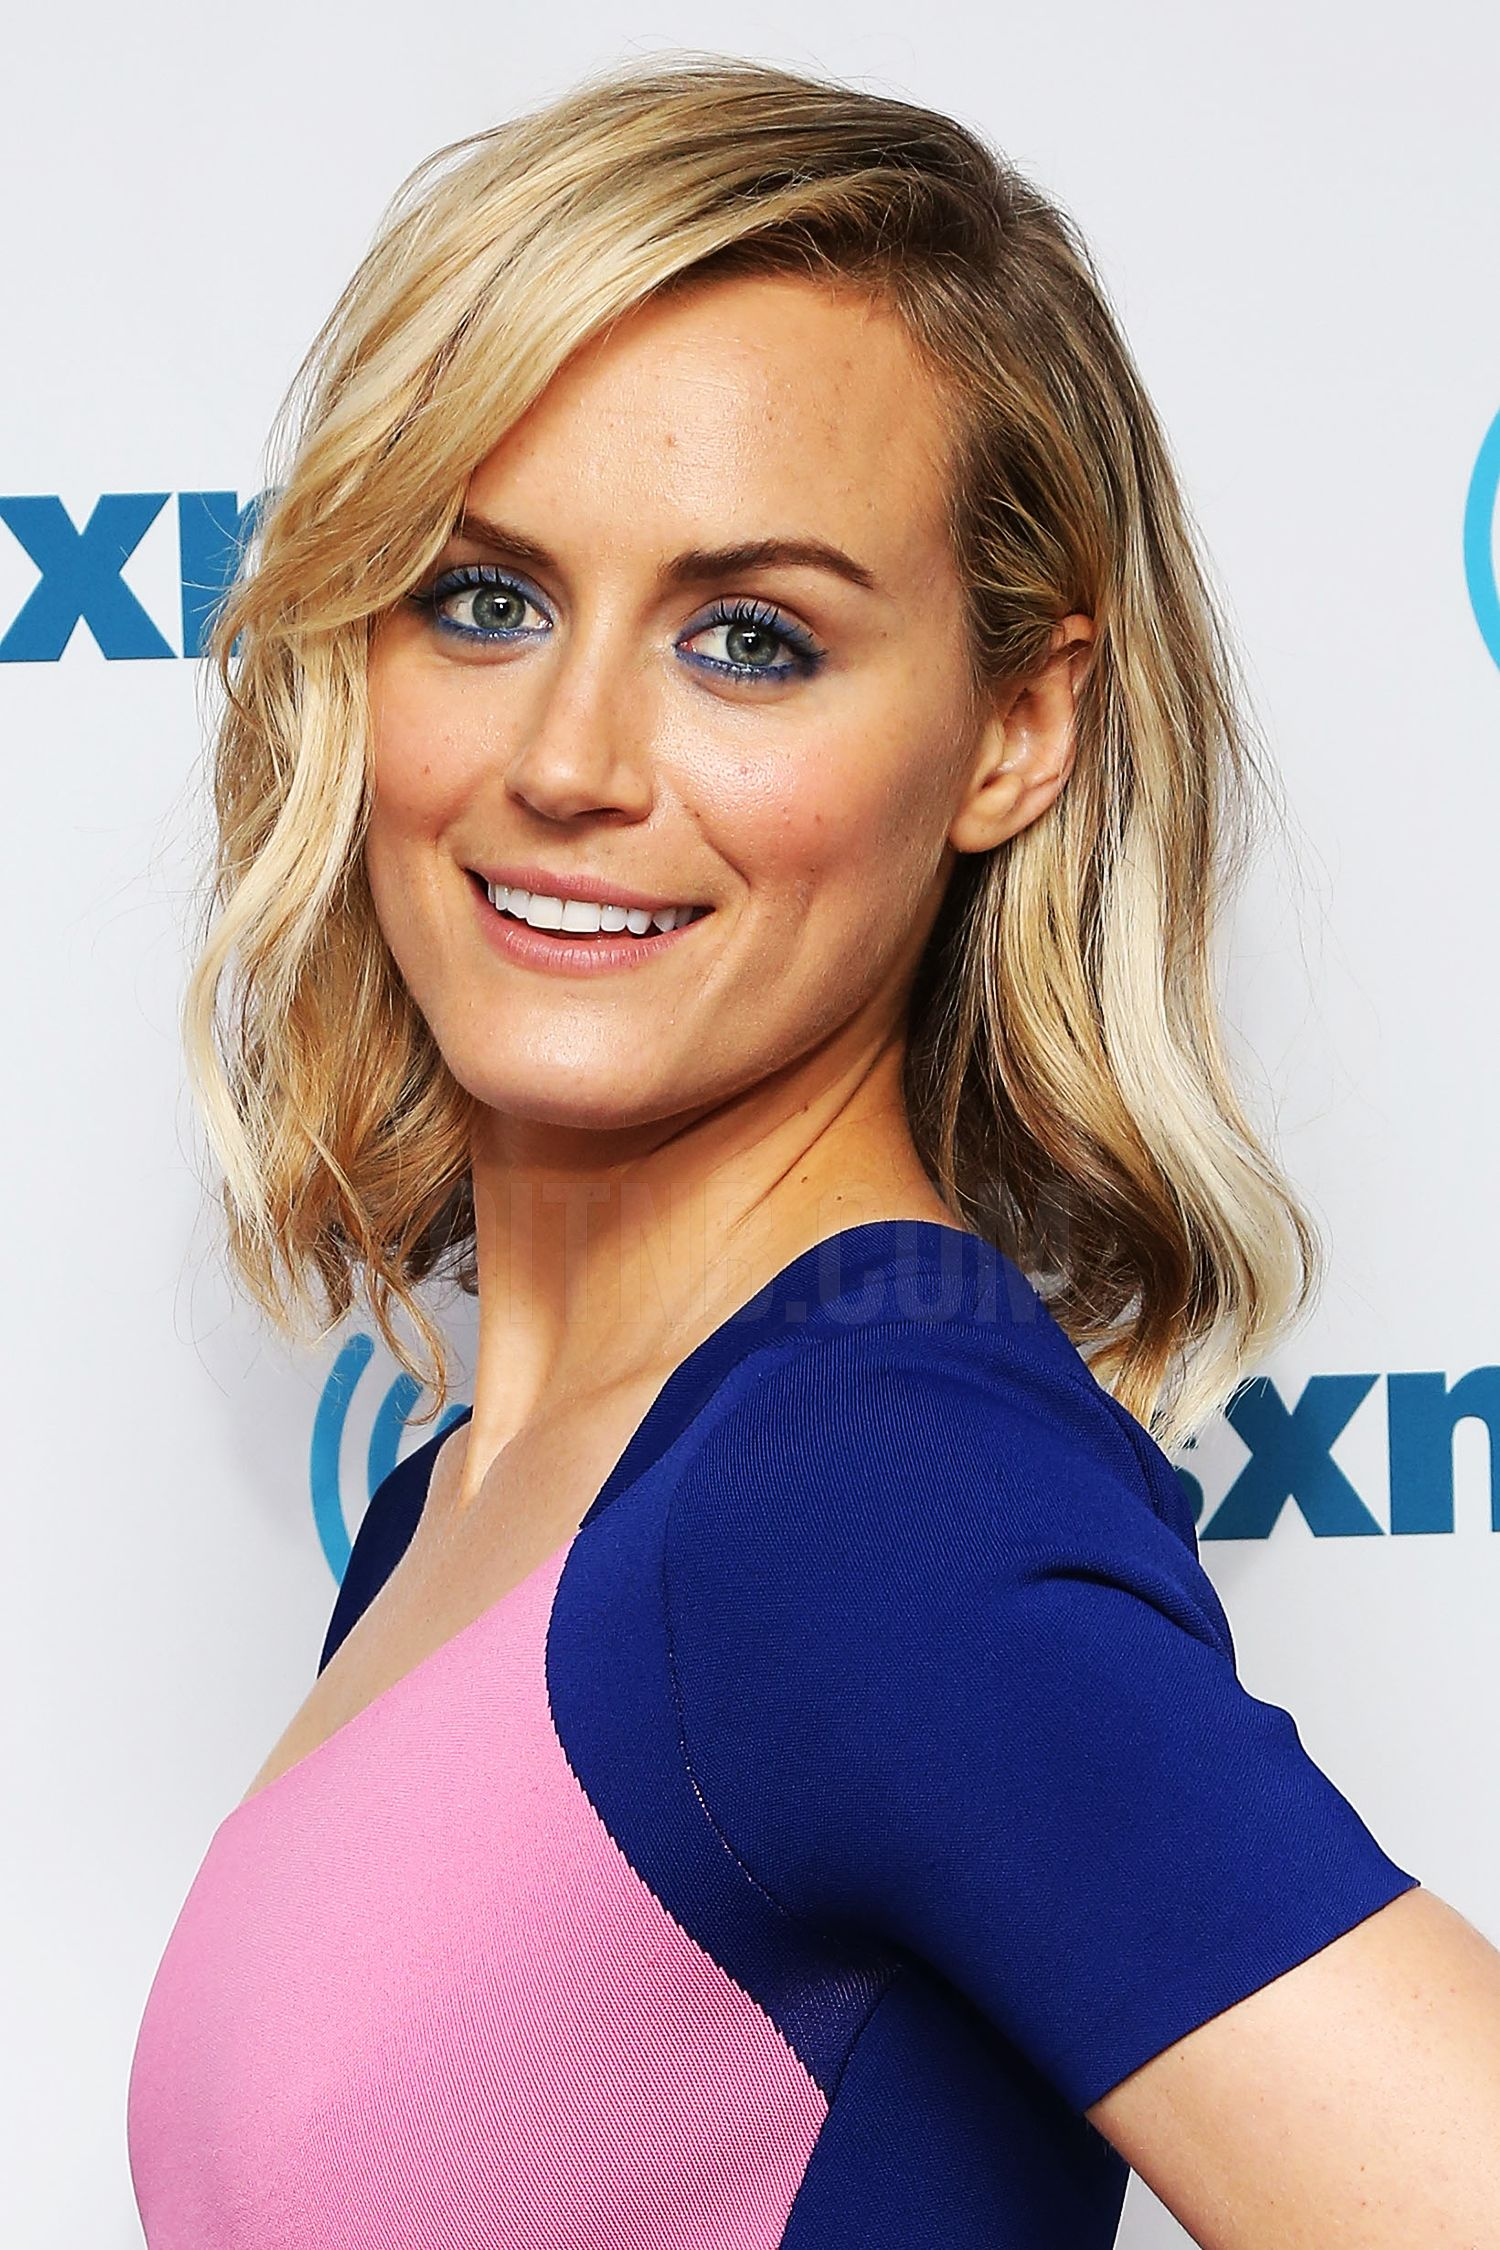 piper chapman real life - Google Search | Getting my hair done | Pinterest | Best Piper chapman ...